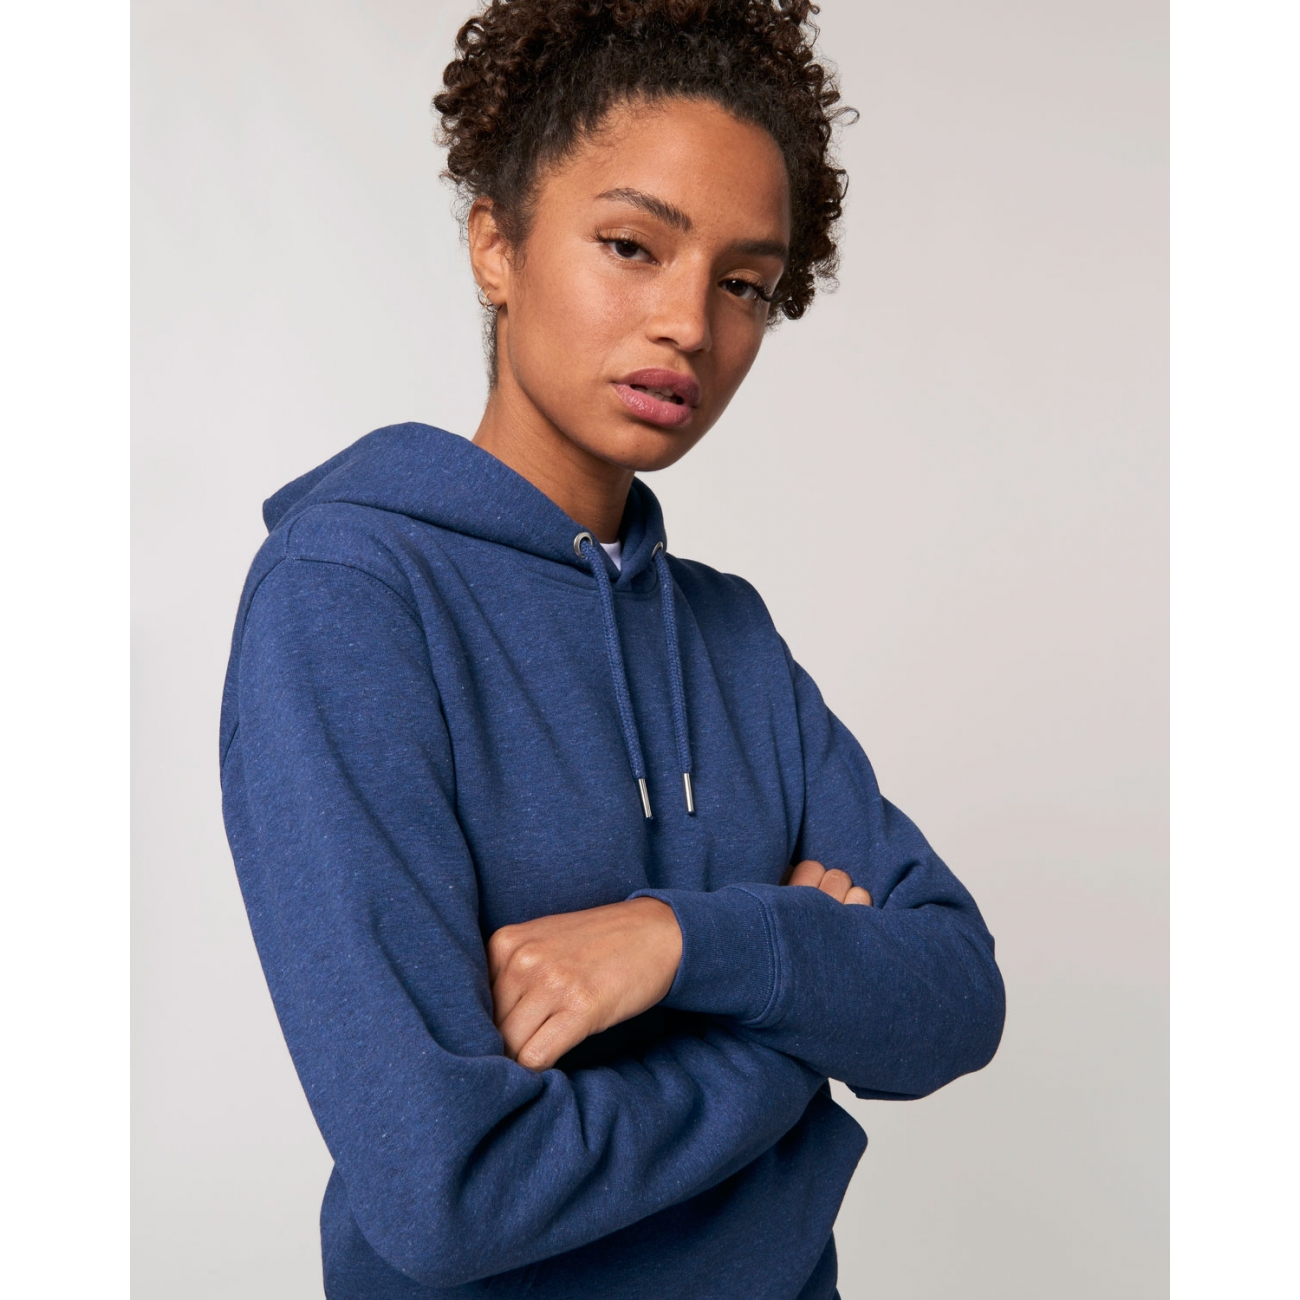 https://tee-shirt-bio.com/10121-thickbox_default/sweat-shirt-femme-capuche-epais-et-interieur-doux-coton-bio-beau-bleu-chine.jpg